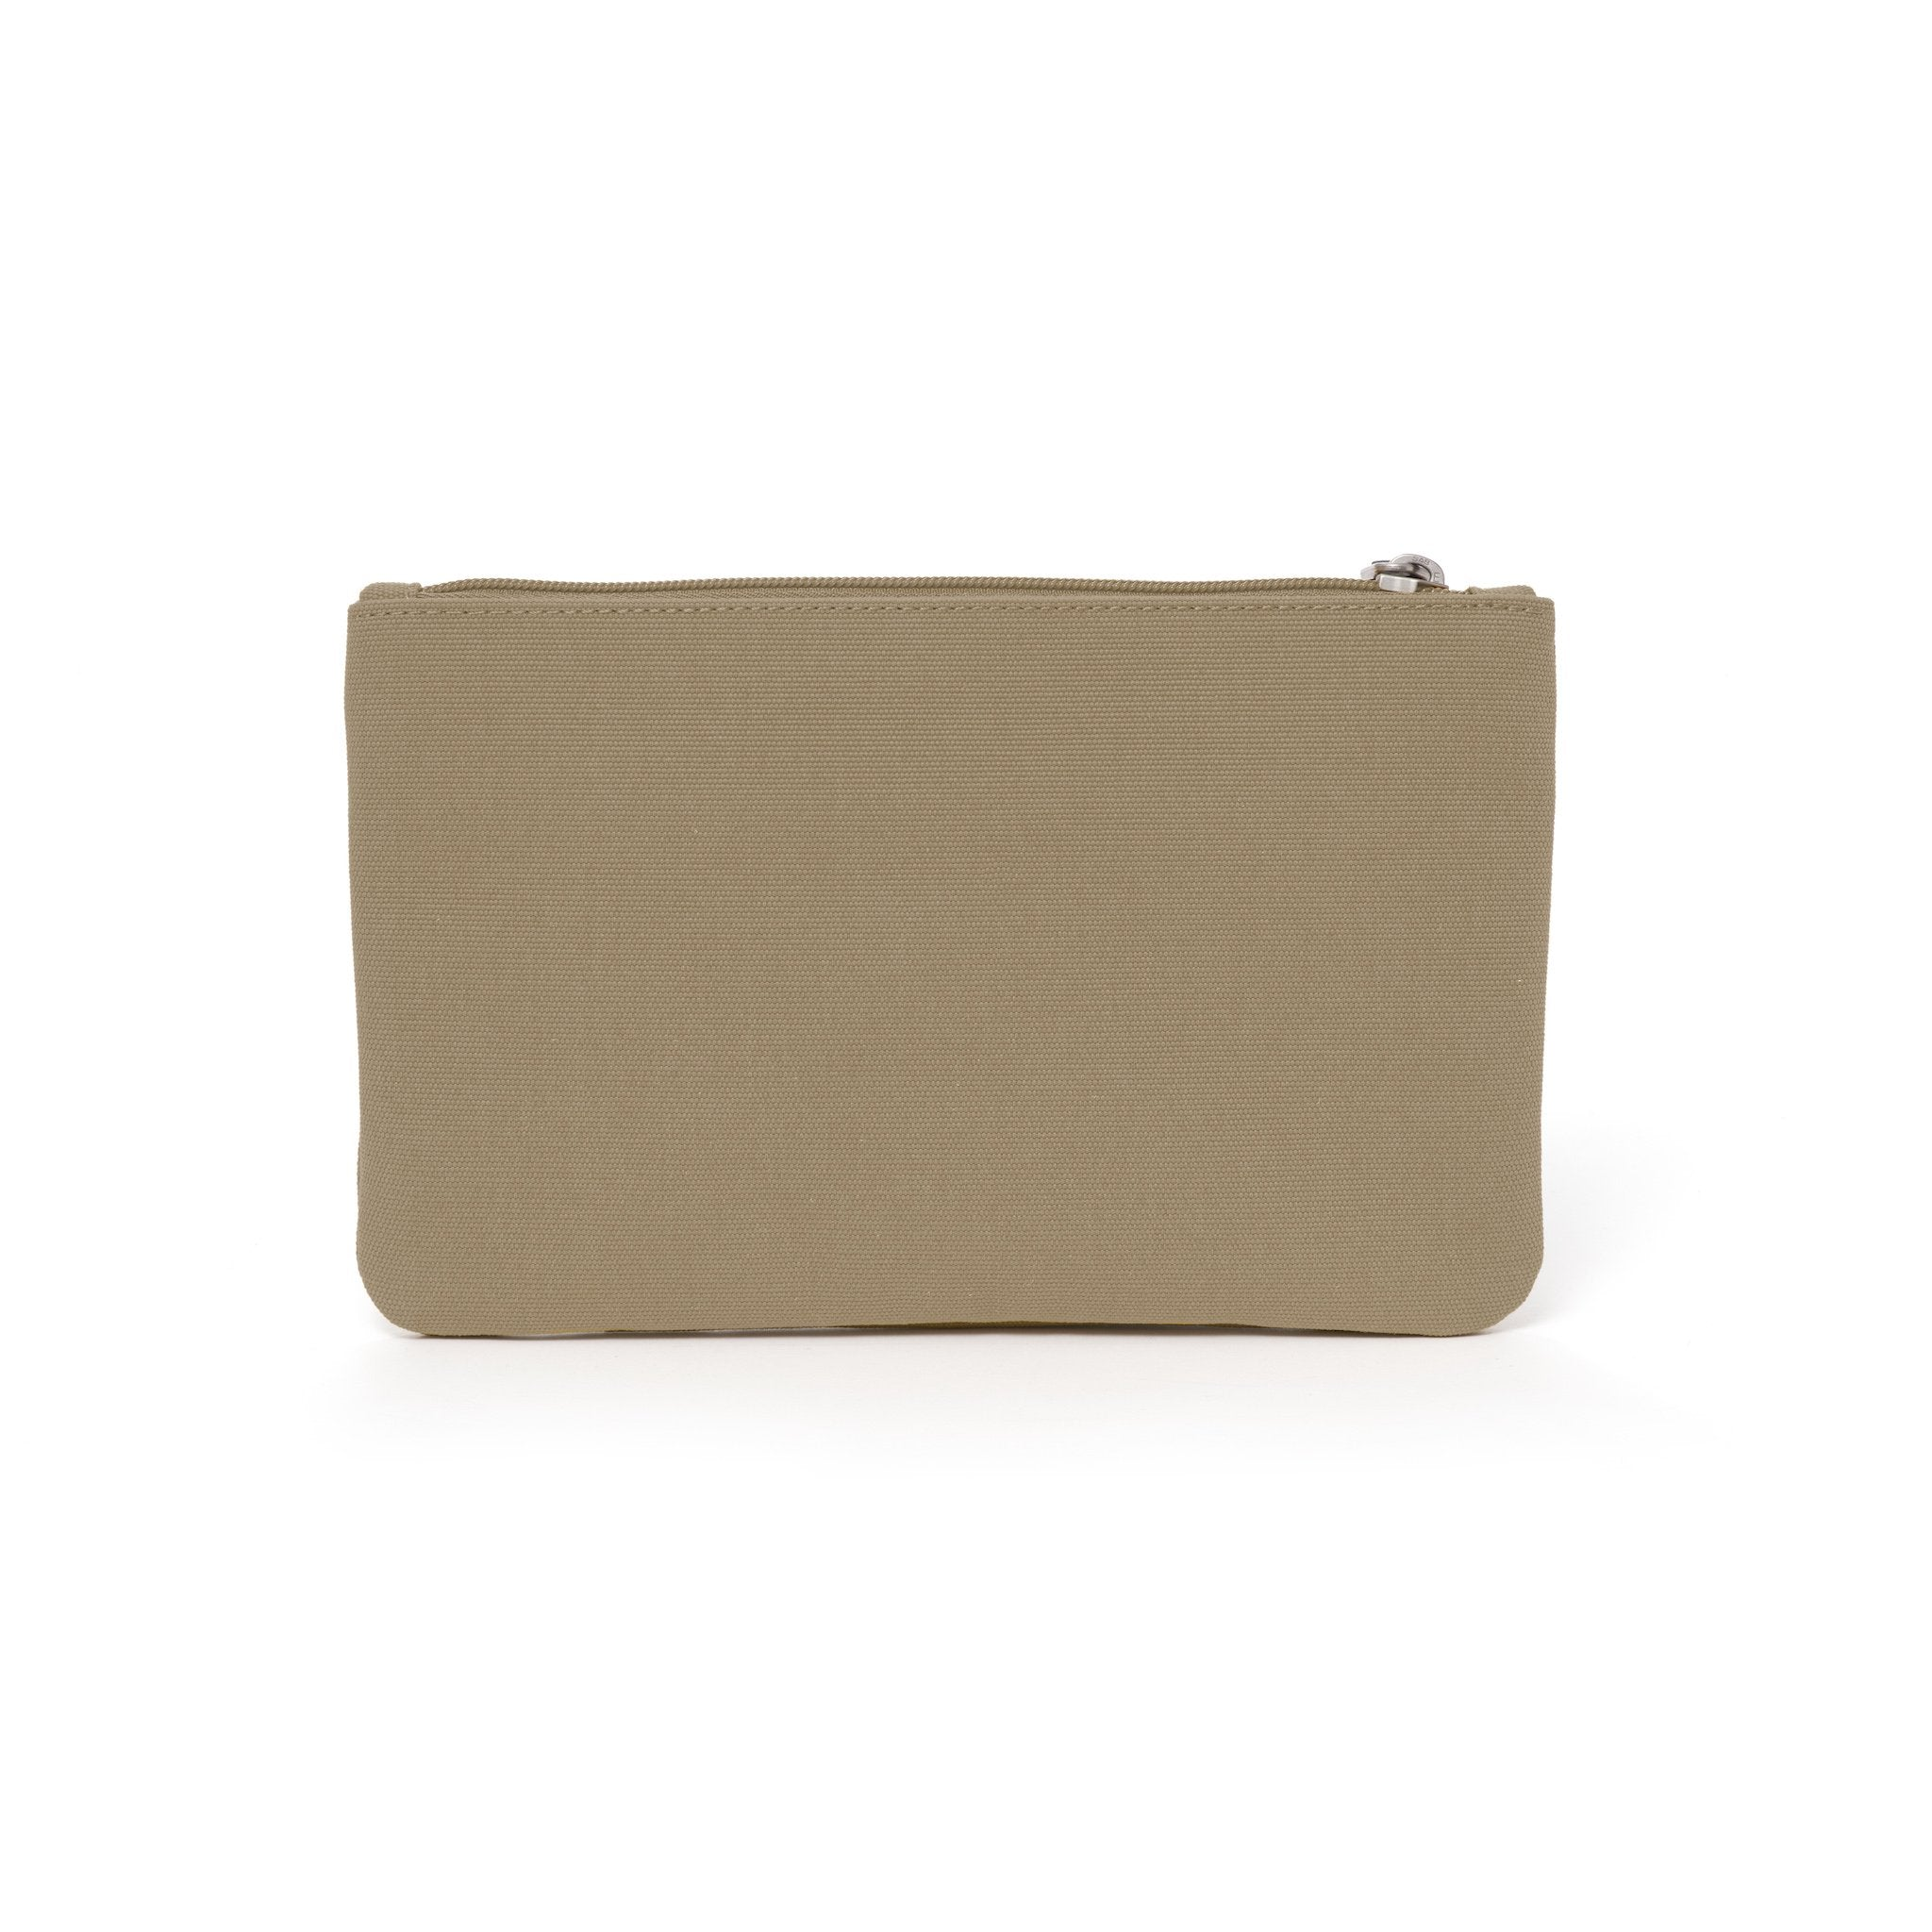 Khaki canvas travel wallet.